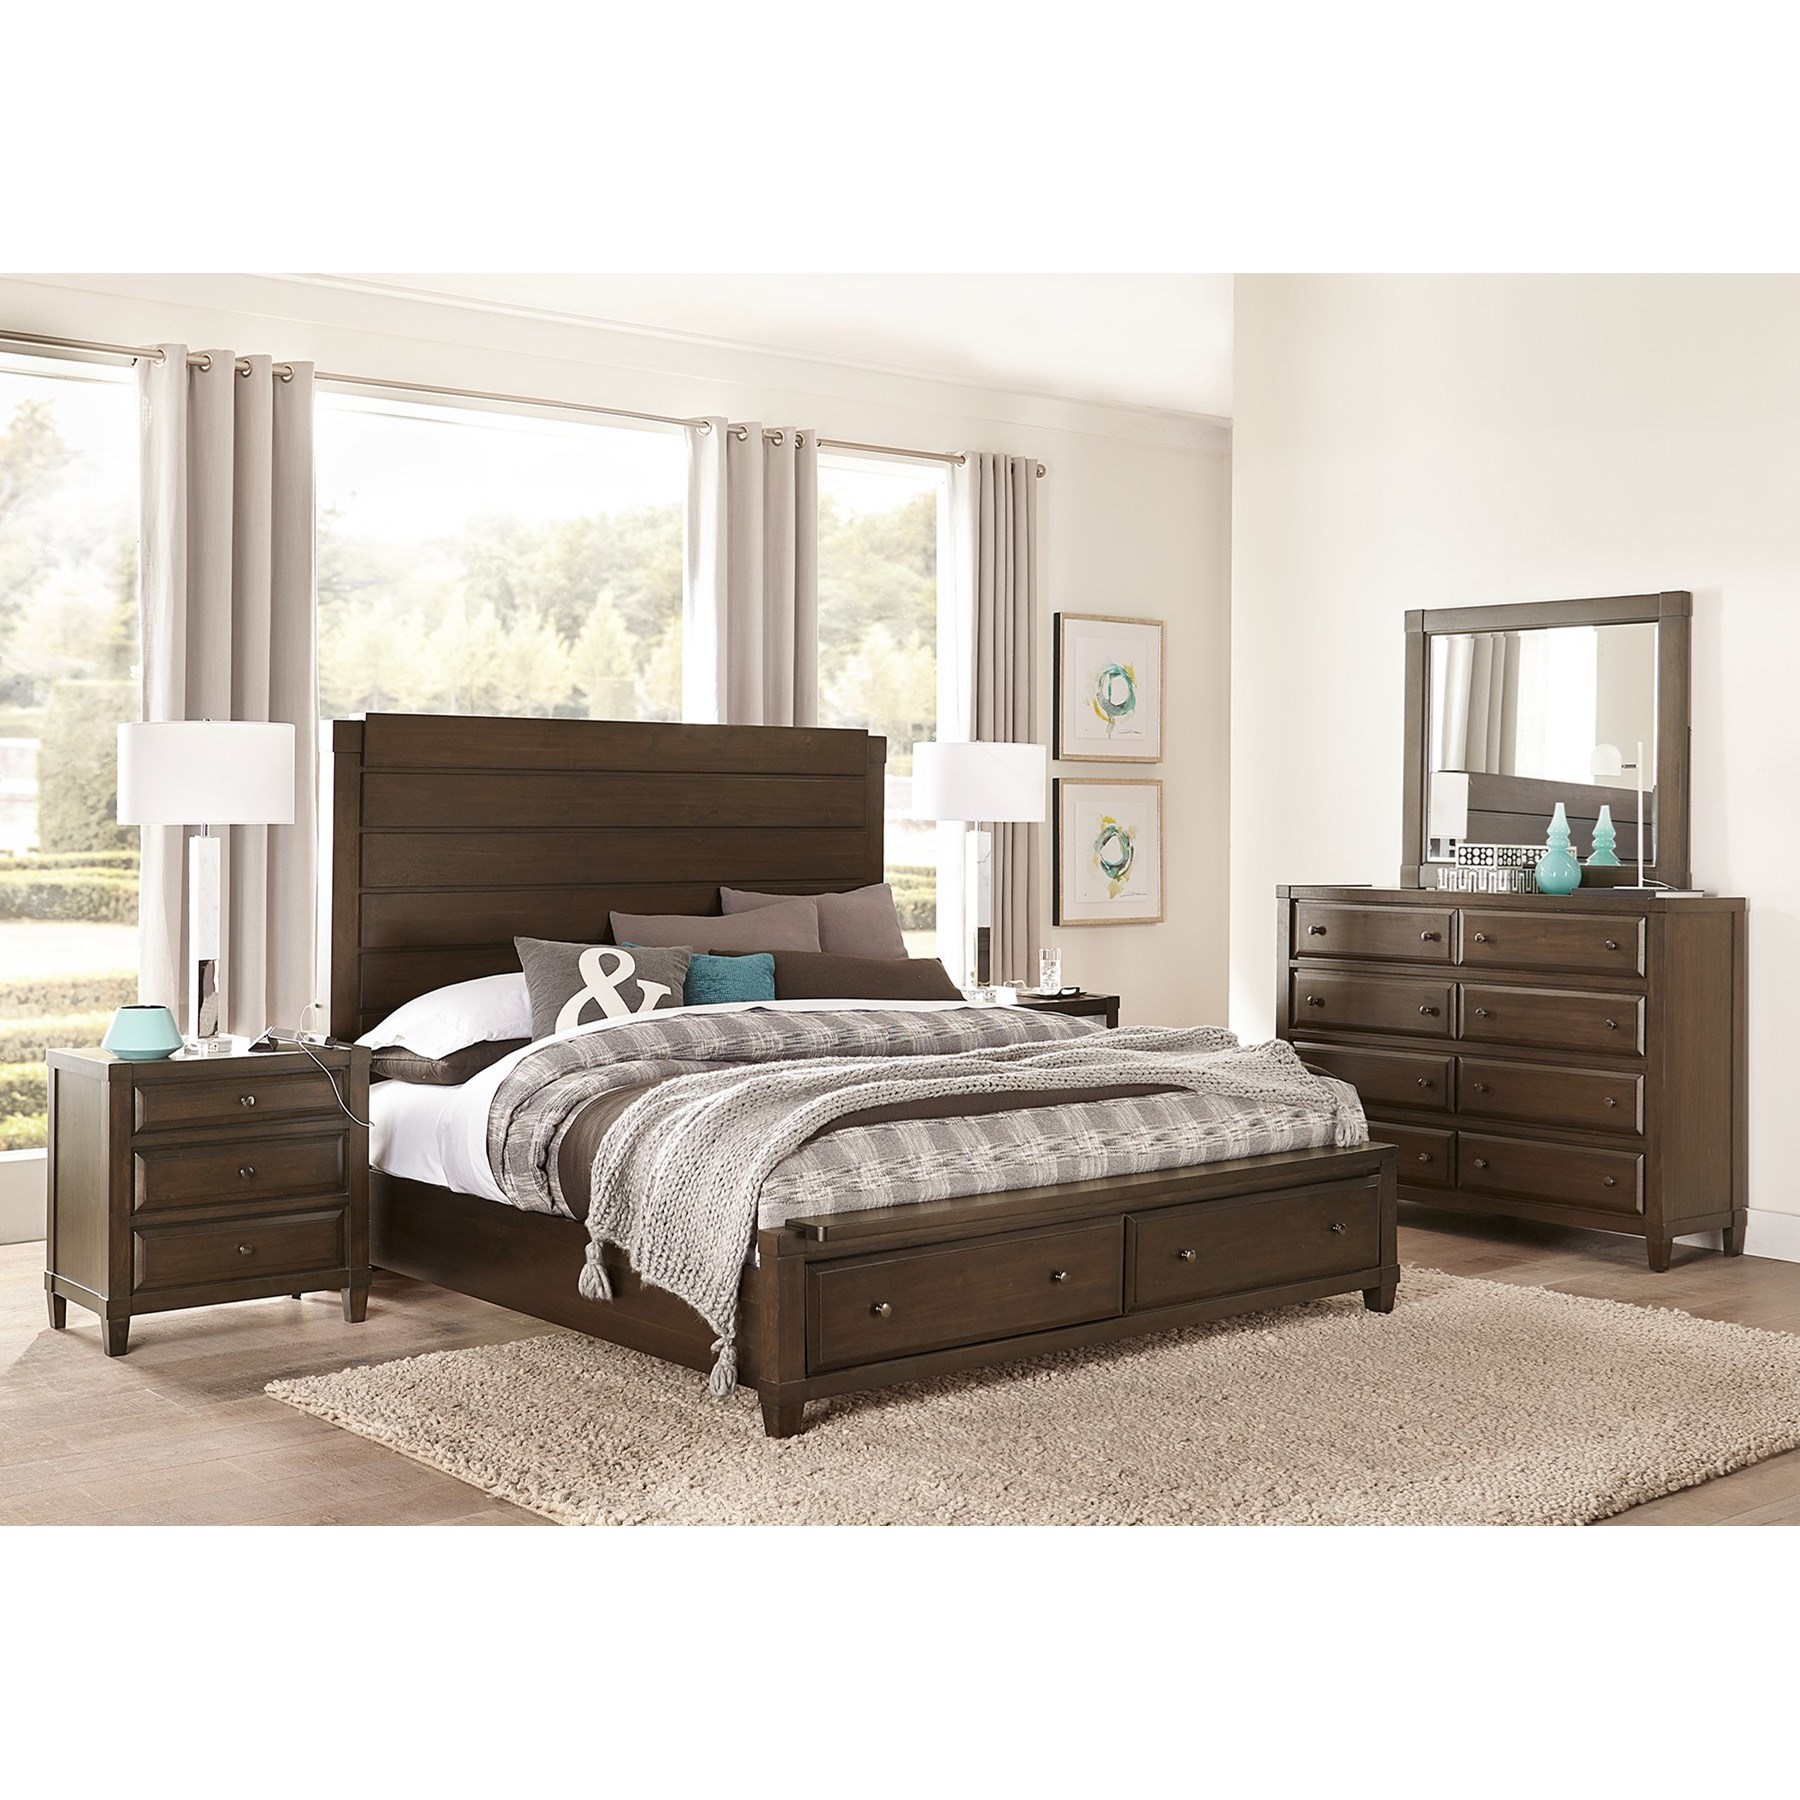 Easton Cal King Bedroom Group by Aspenhome at Dunk & Bright Furniture